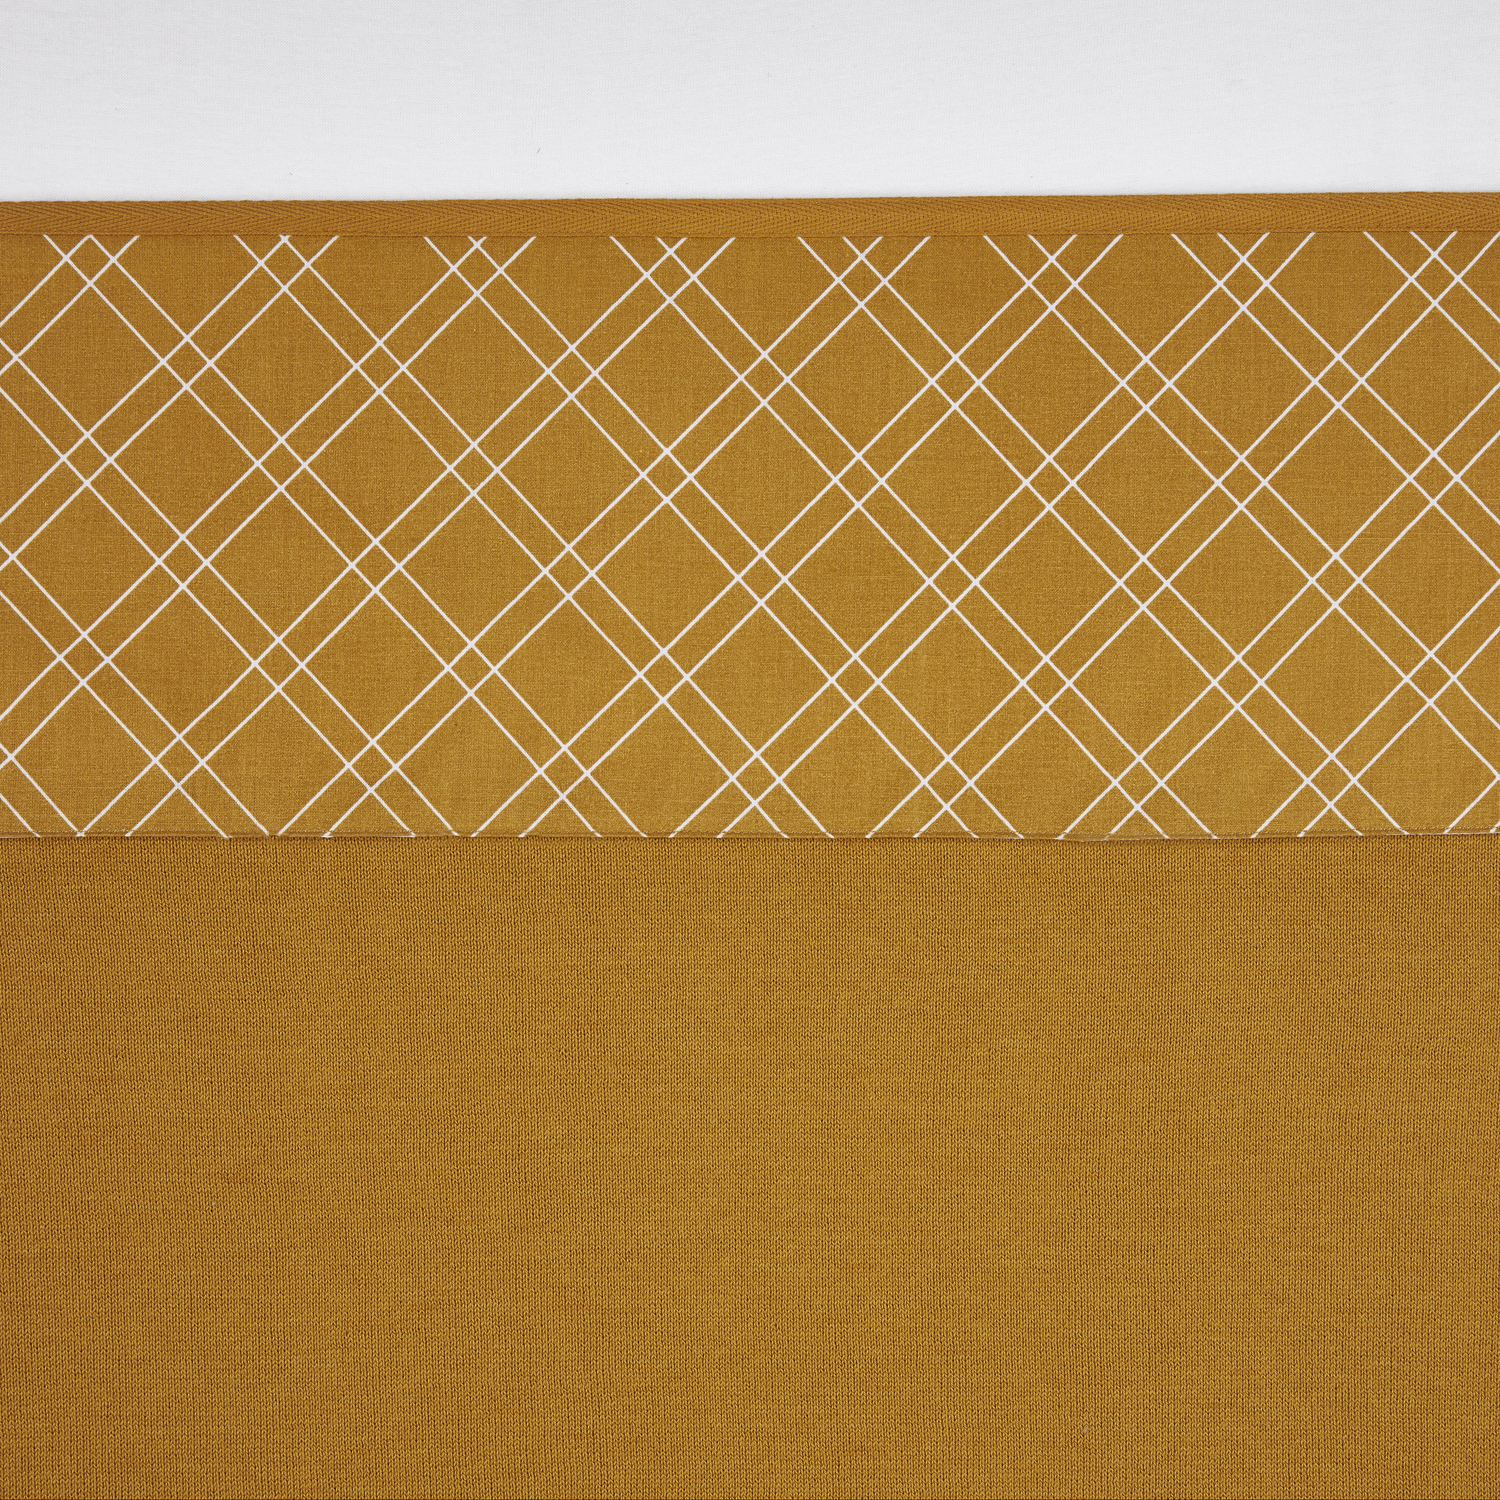 Ledikantlaken Double Diamond - Honey Gold - 100x150cm